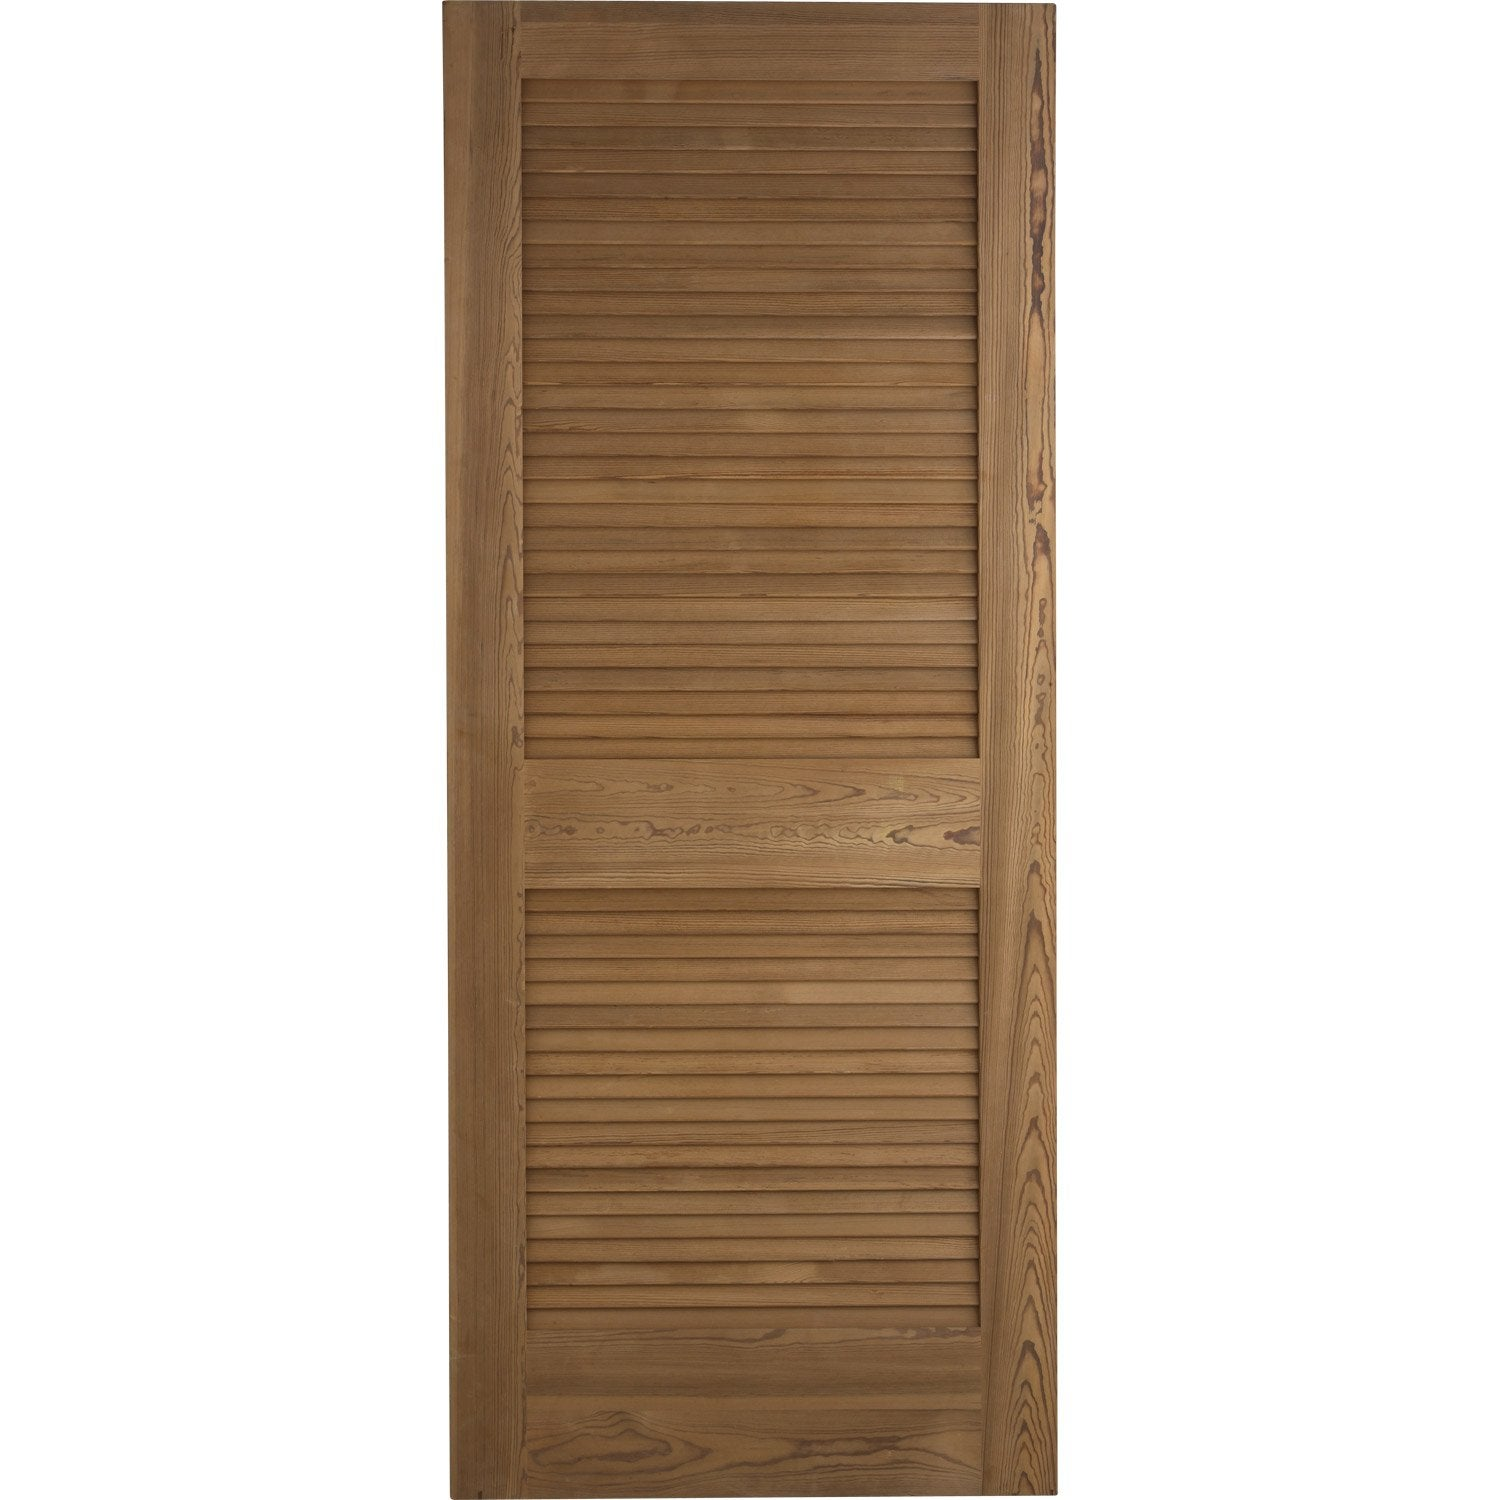 Porte coulissante pin plaqu marron java artens 204 x 73 - Interieur placard leroy merlin ...